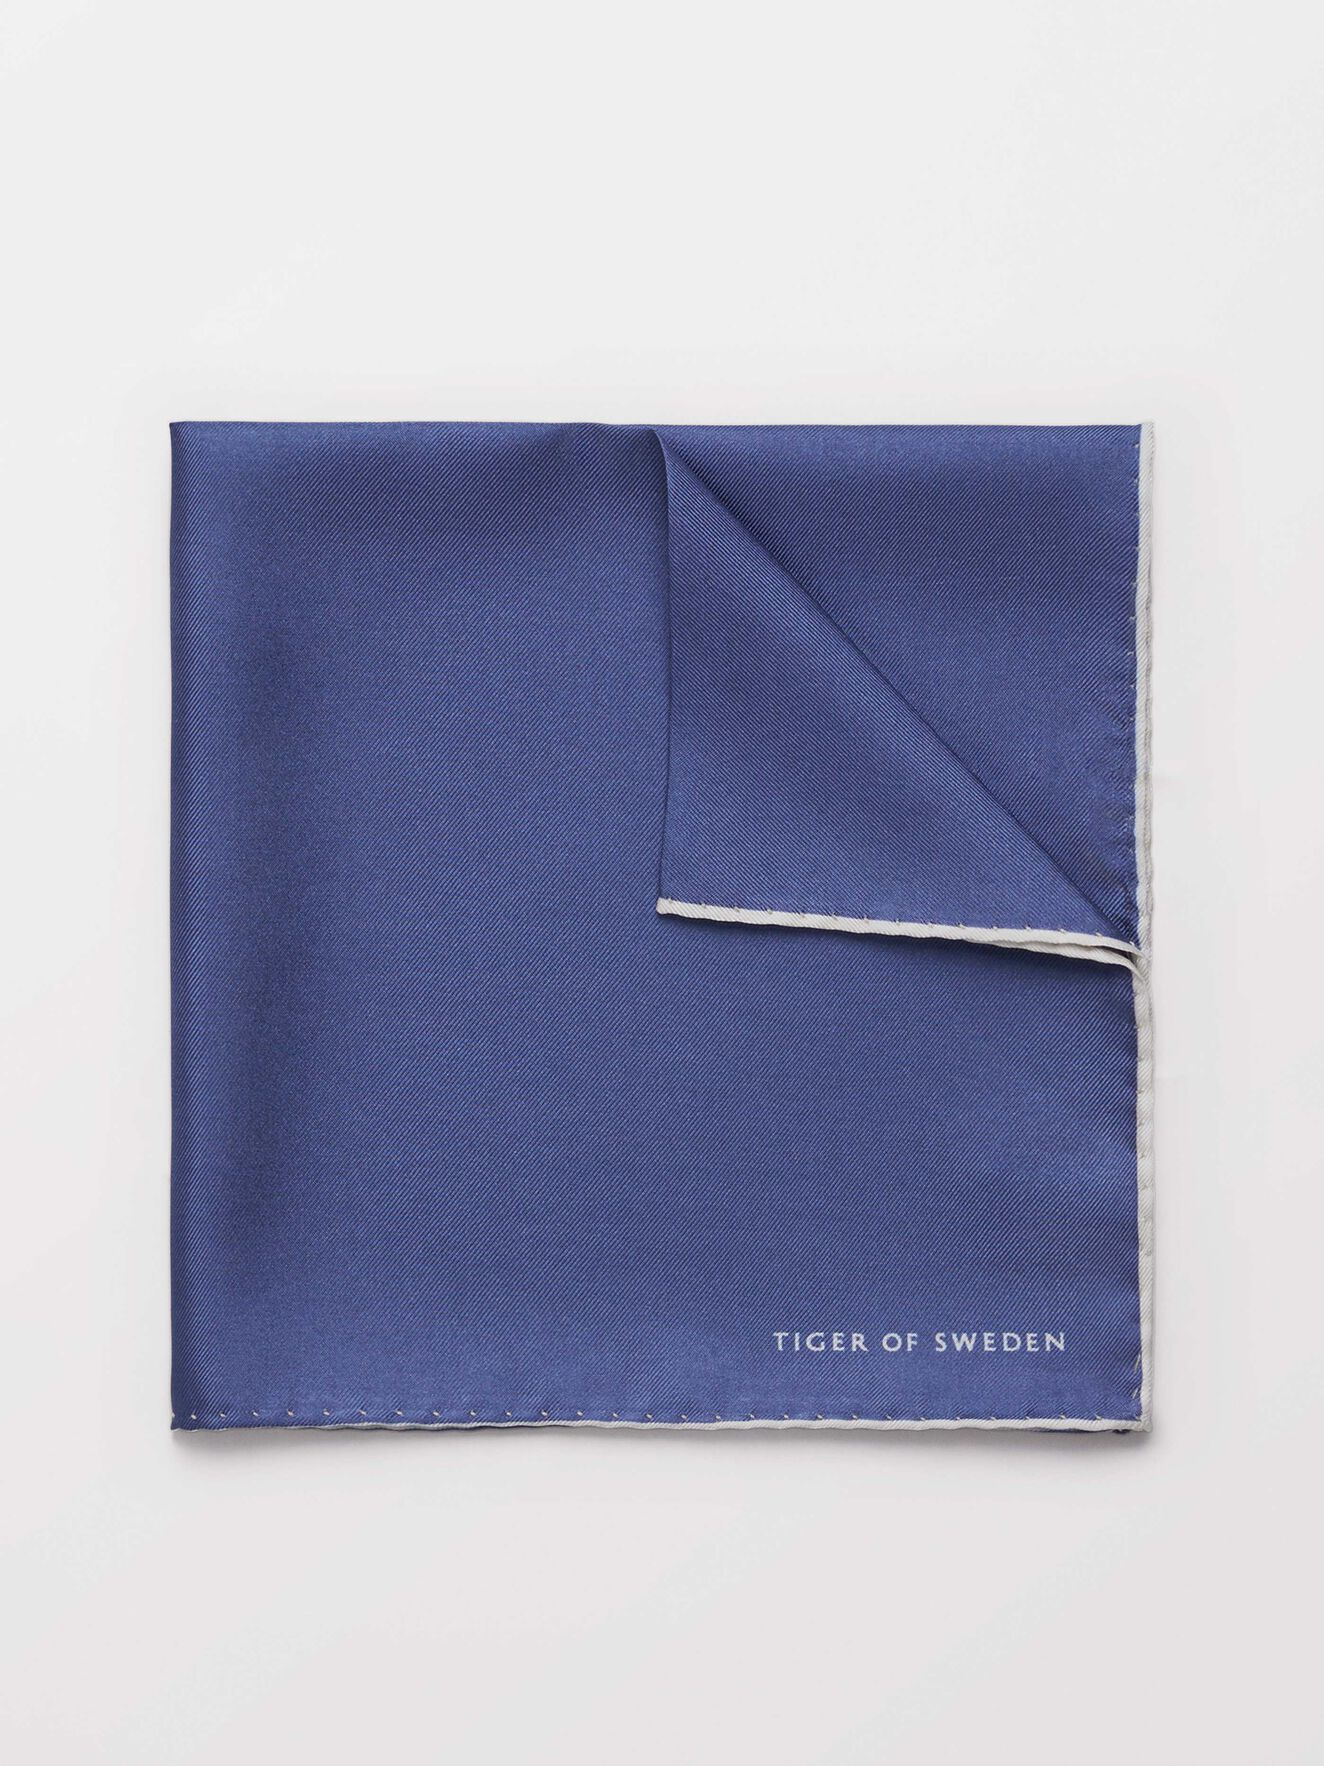 Penche Tuch in Soft blue from Tiger of Sweden